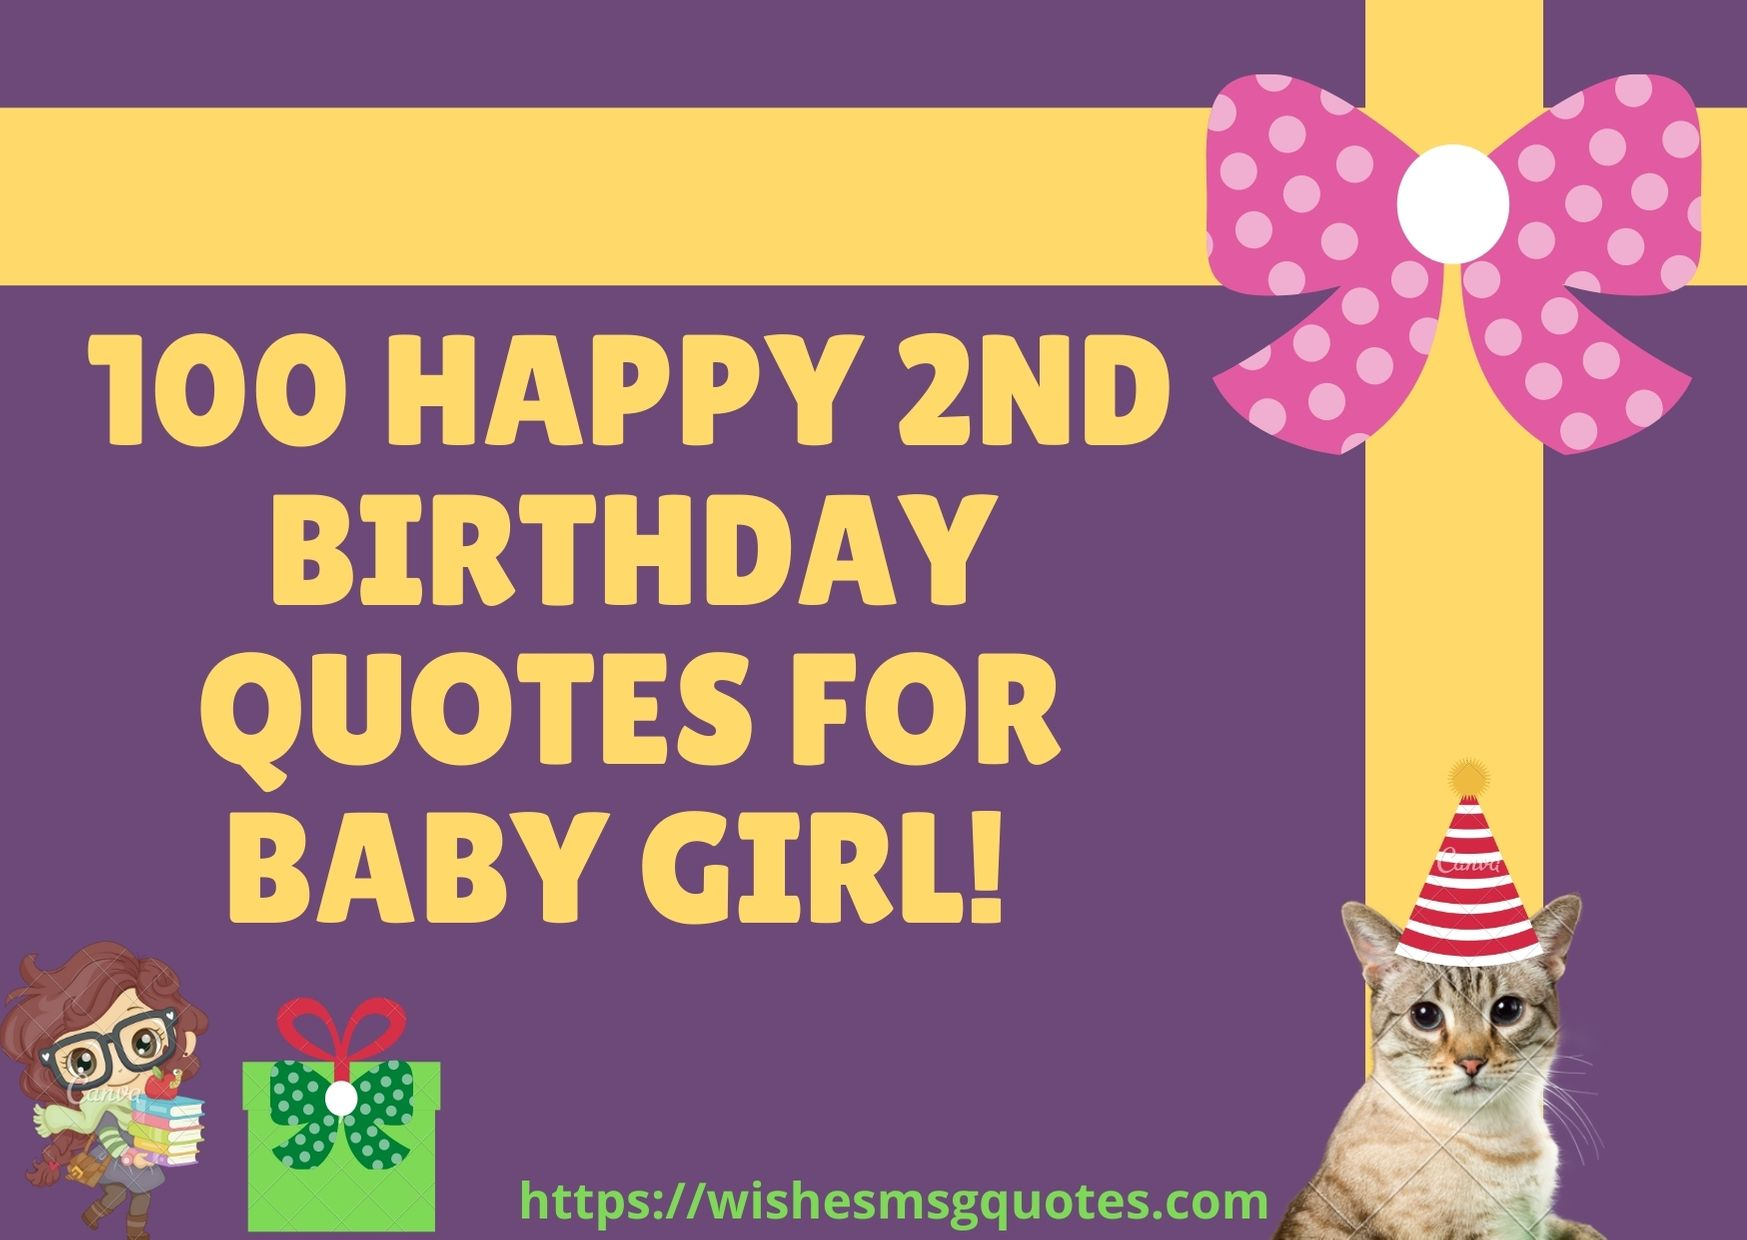 100 Happy 2nd Birthday Quotes For Baby Girl